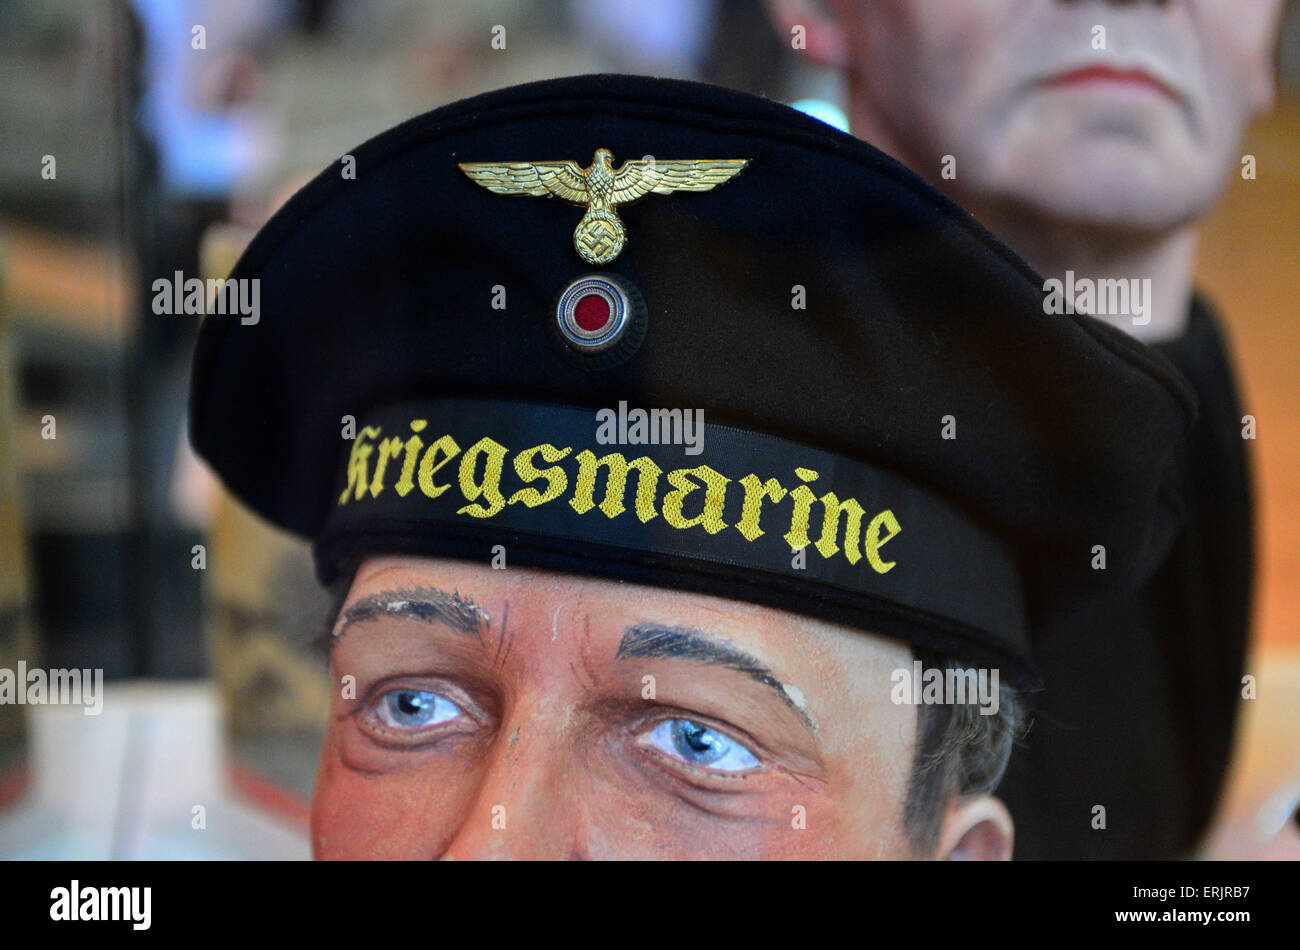 WW2 German Navy Kriegsmarine Blue U-Boat Sailor cap exhibited in Derry, Londonderry, Northern Ireland - Stock Image